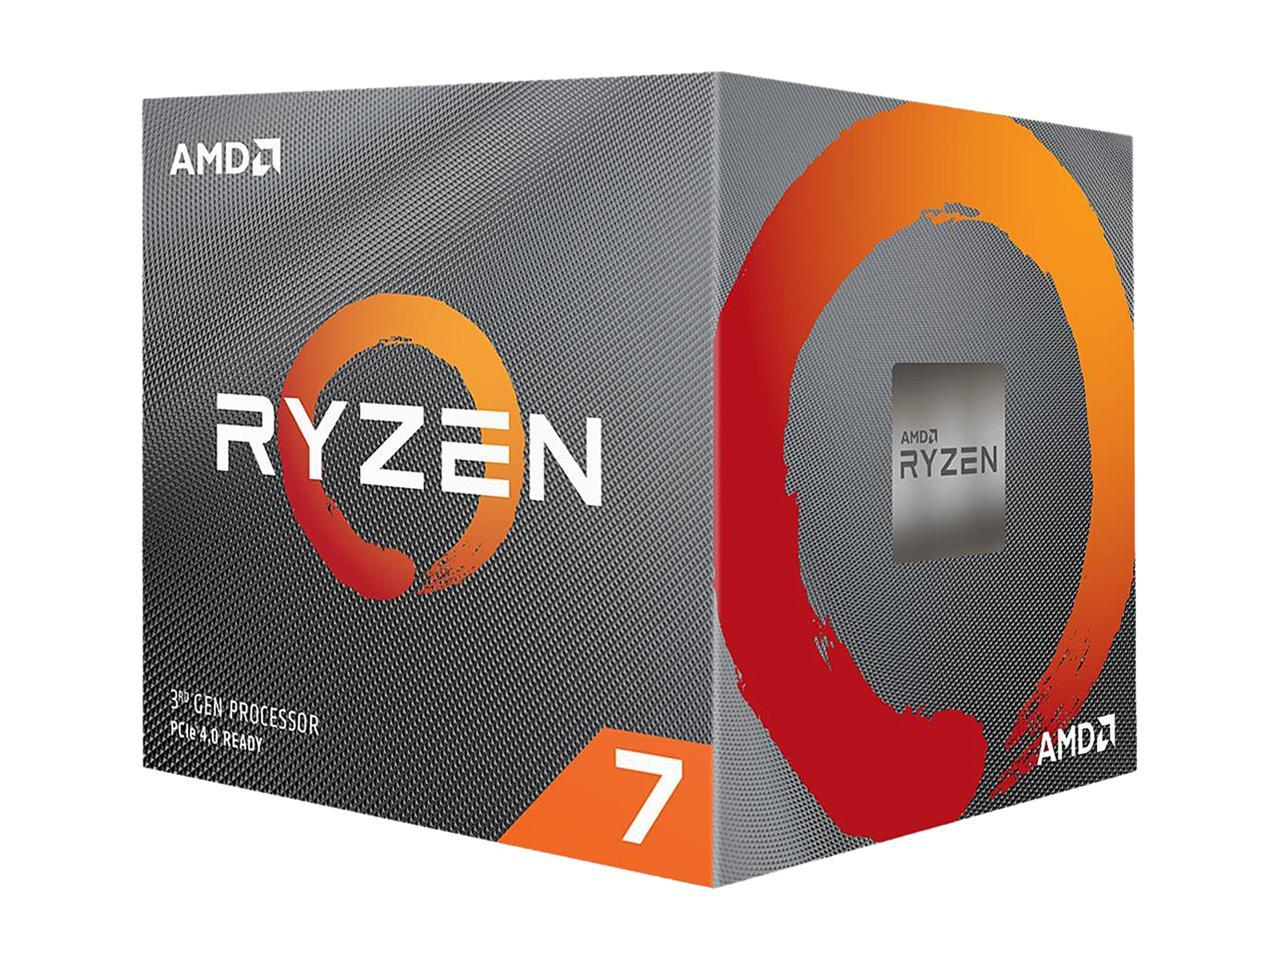 AMD Ryzen 7 3700X 8-Core 3.6GHz Socket AM4 Desktop Processor